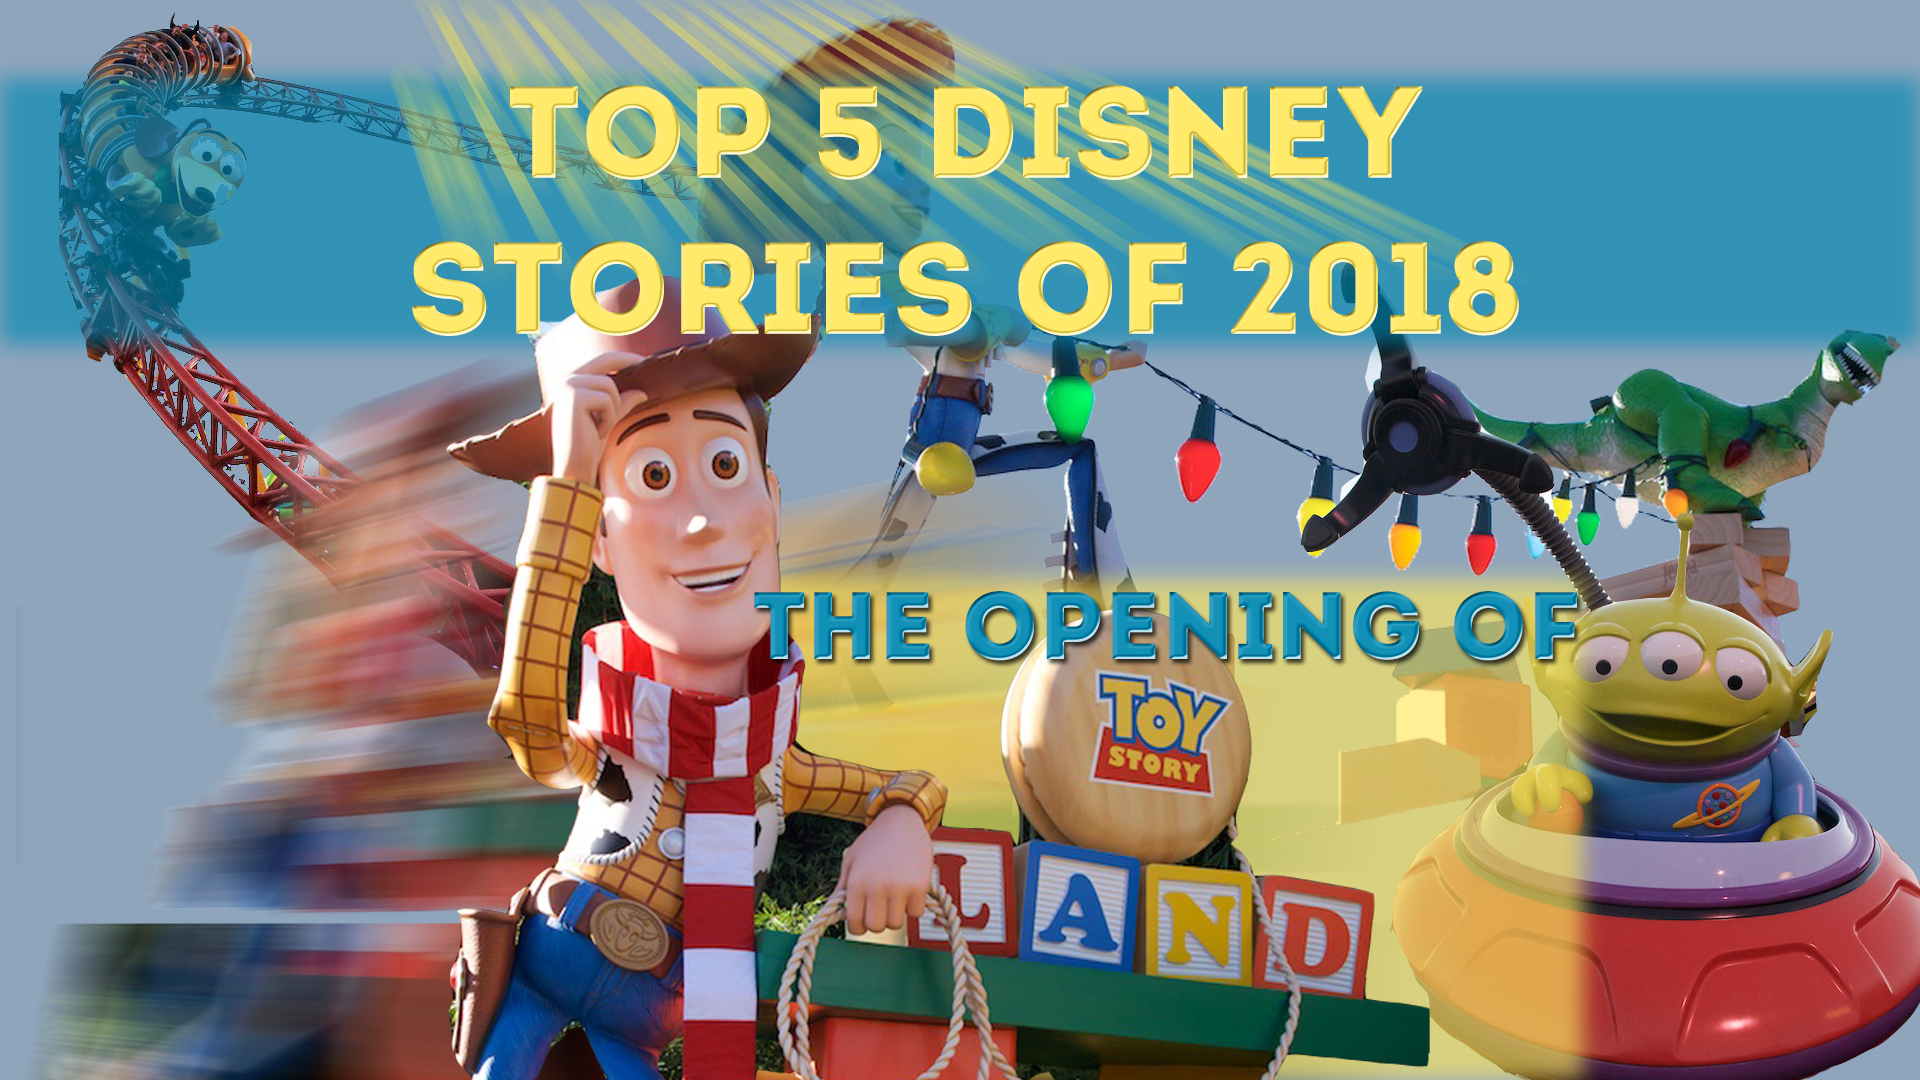 Here's Why Toy Story Land is One of the Biggest Disney Stories of 2018 – Top 5 Disney Stories of 2018